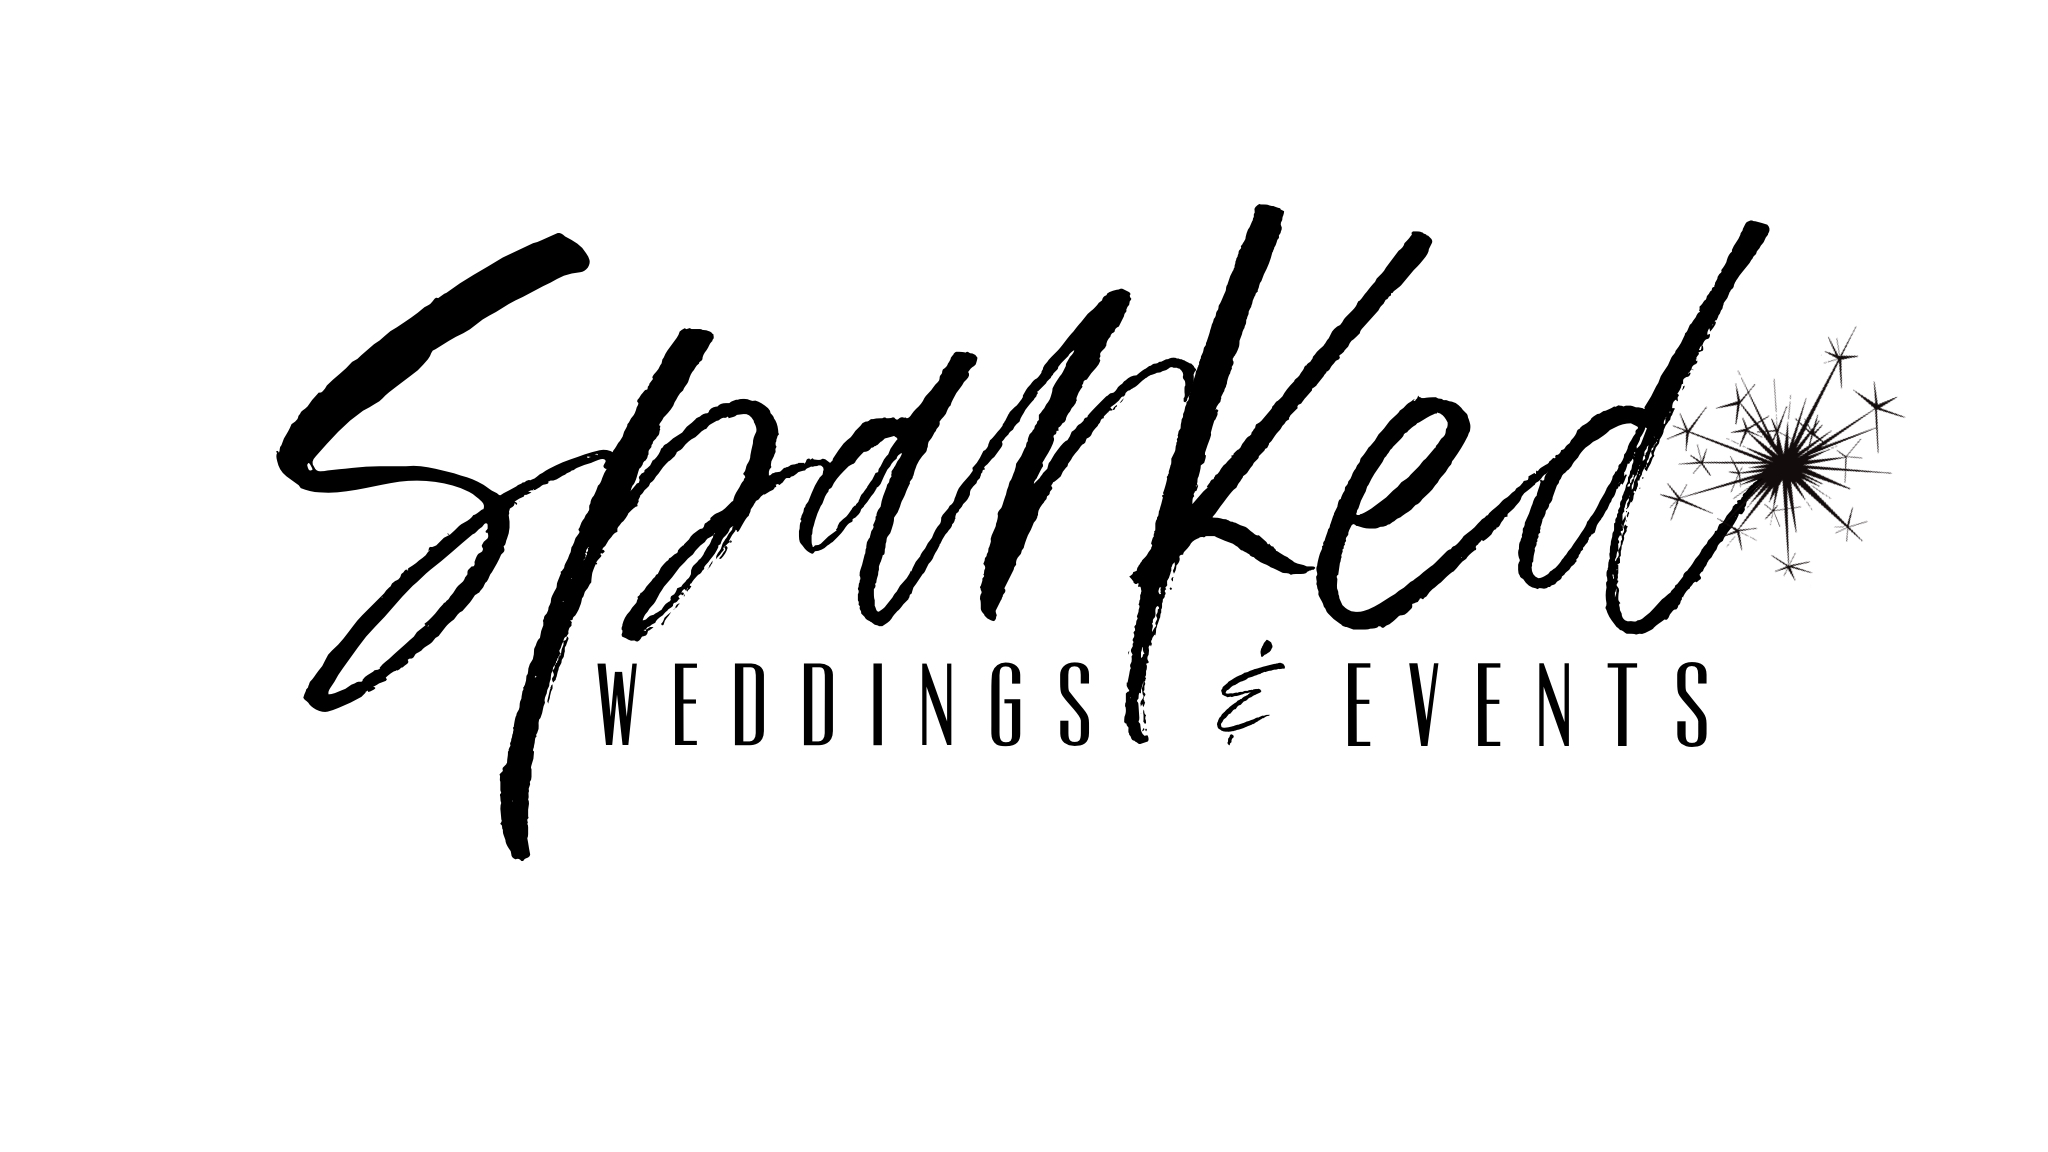 Sparked Weddings & Events | Wedding Planner in Grand Junction, Colorado featured on WED West Slope - a directory for wedding vendors.